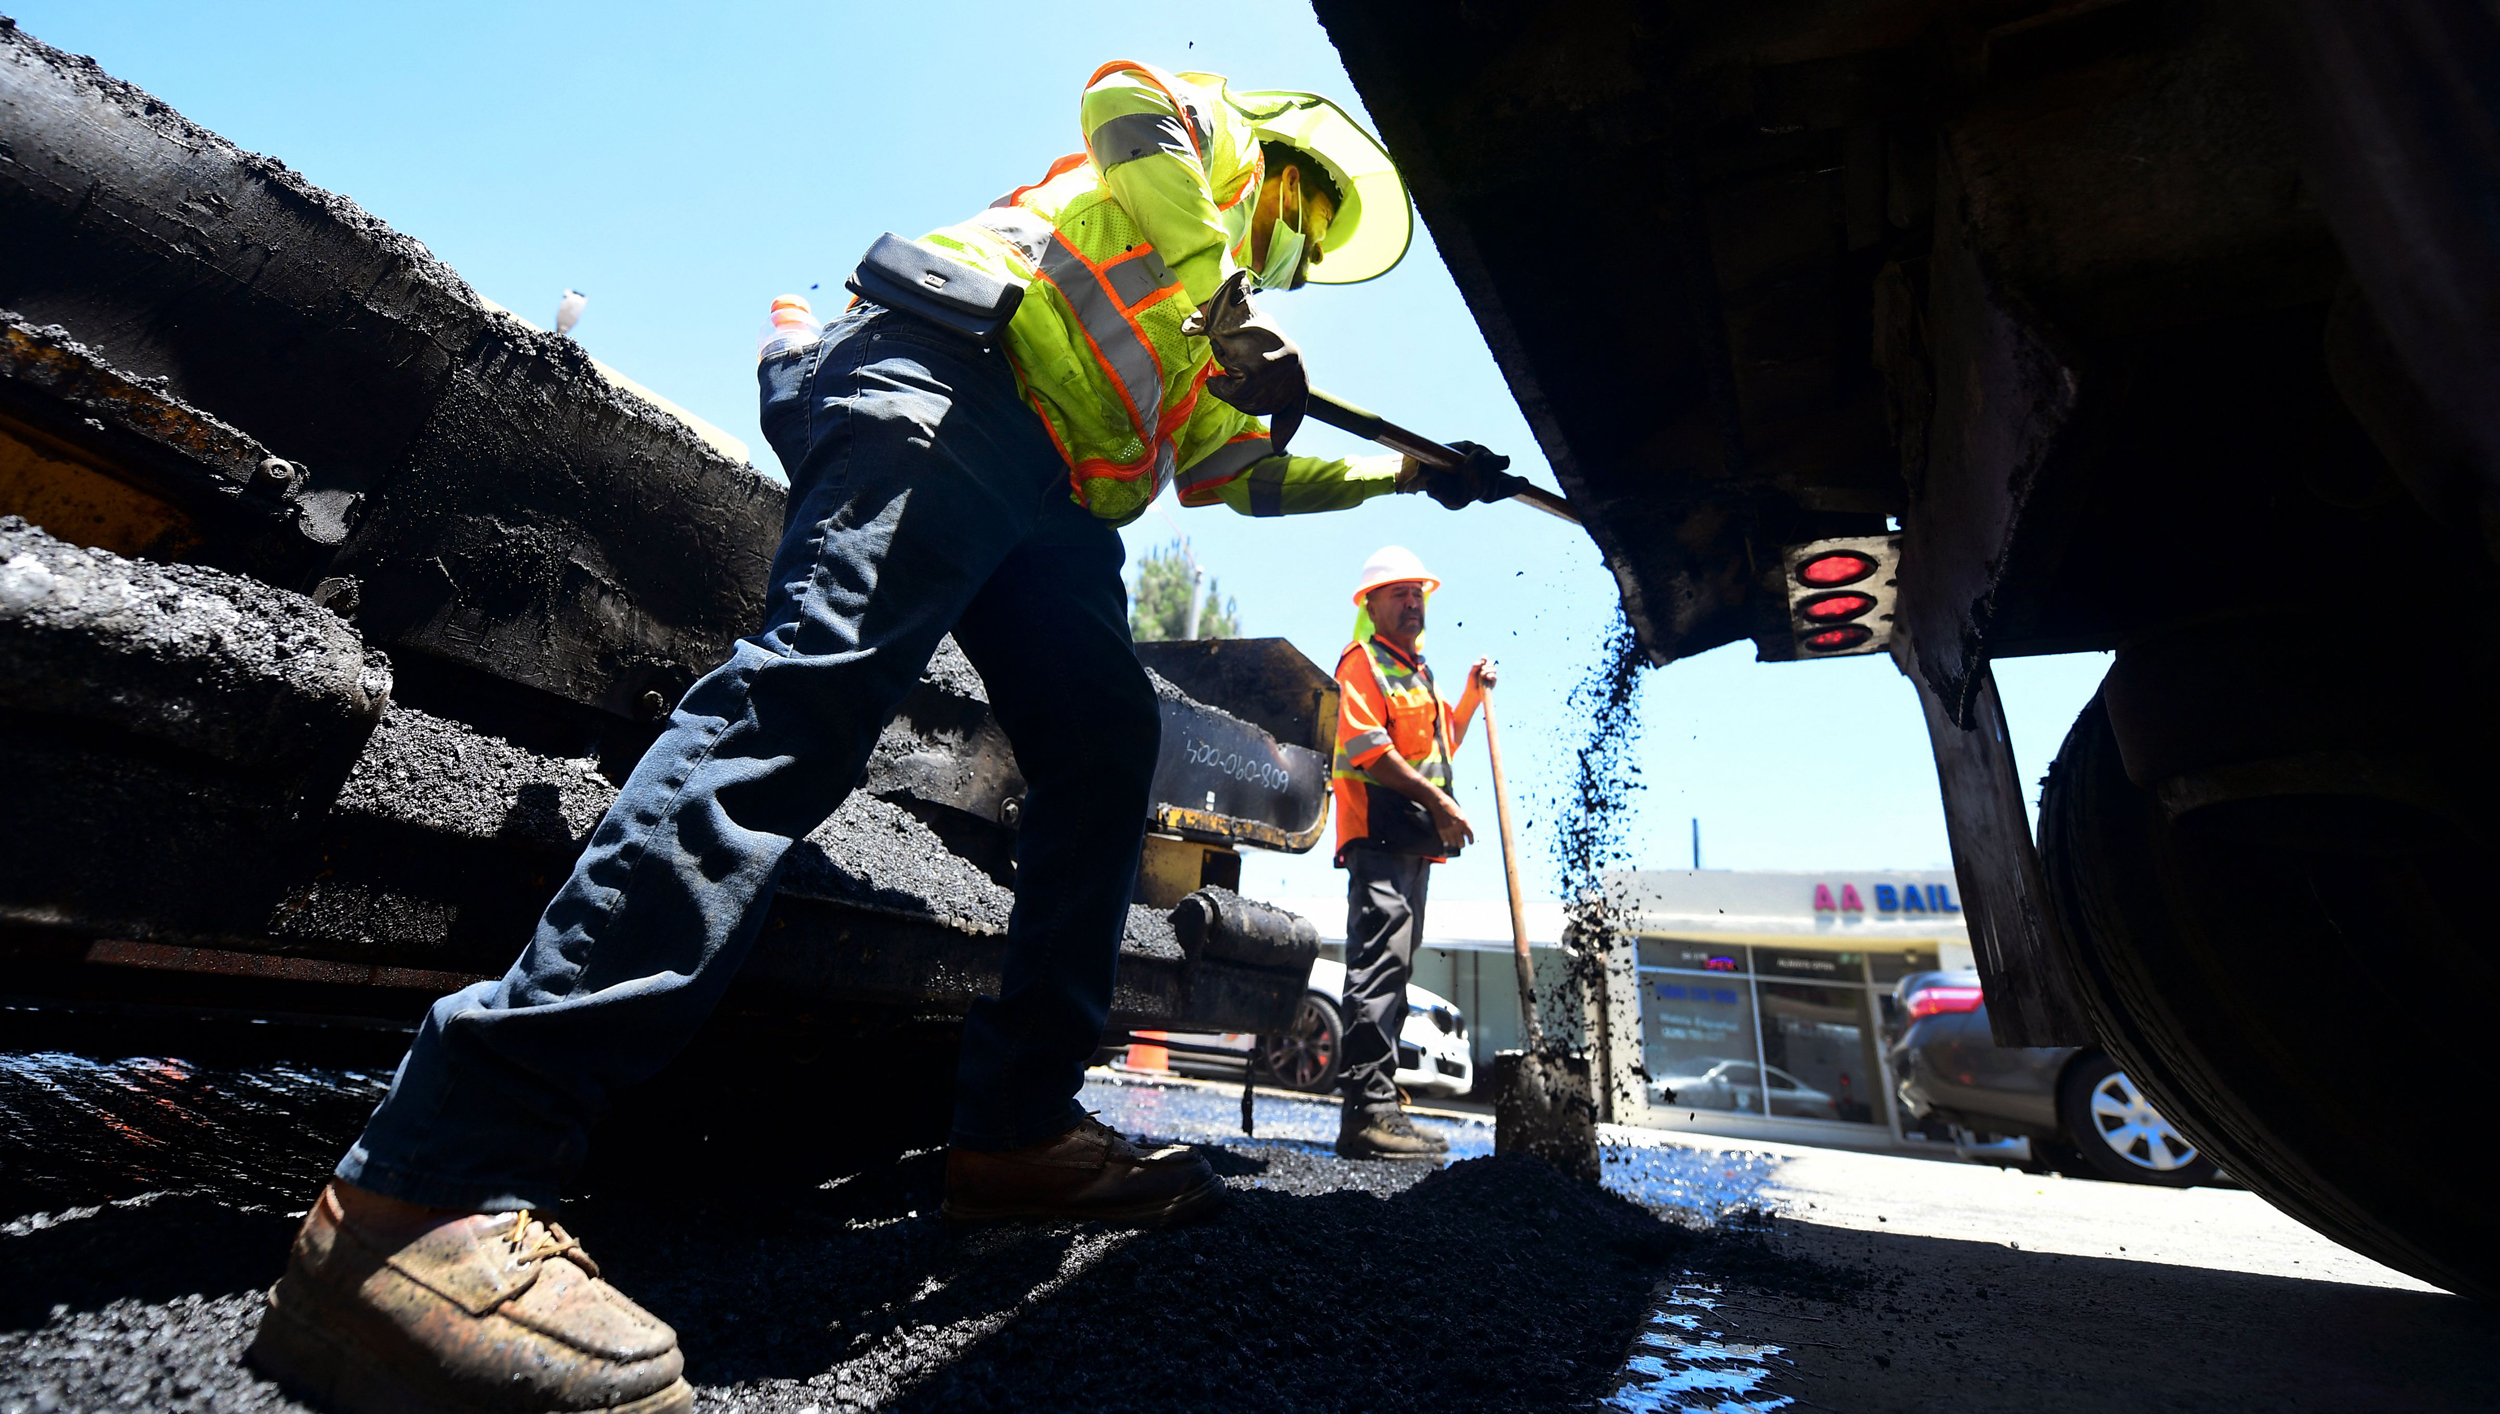 Infrastructure deal clears another Senate hurdle as House Democrats threaten rebellion